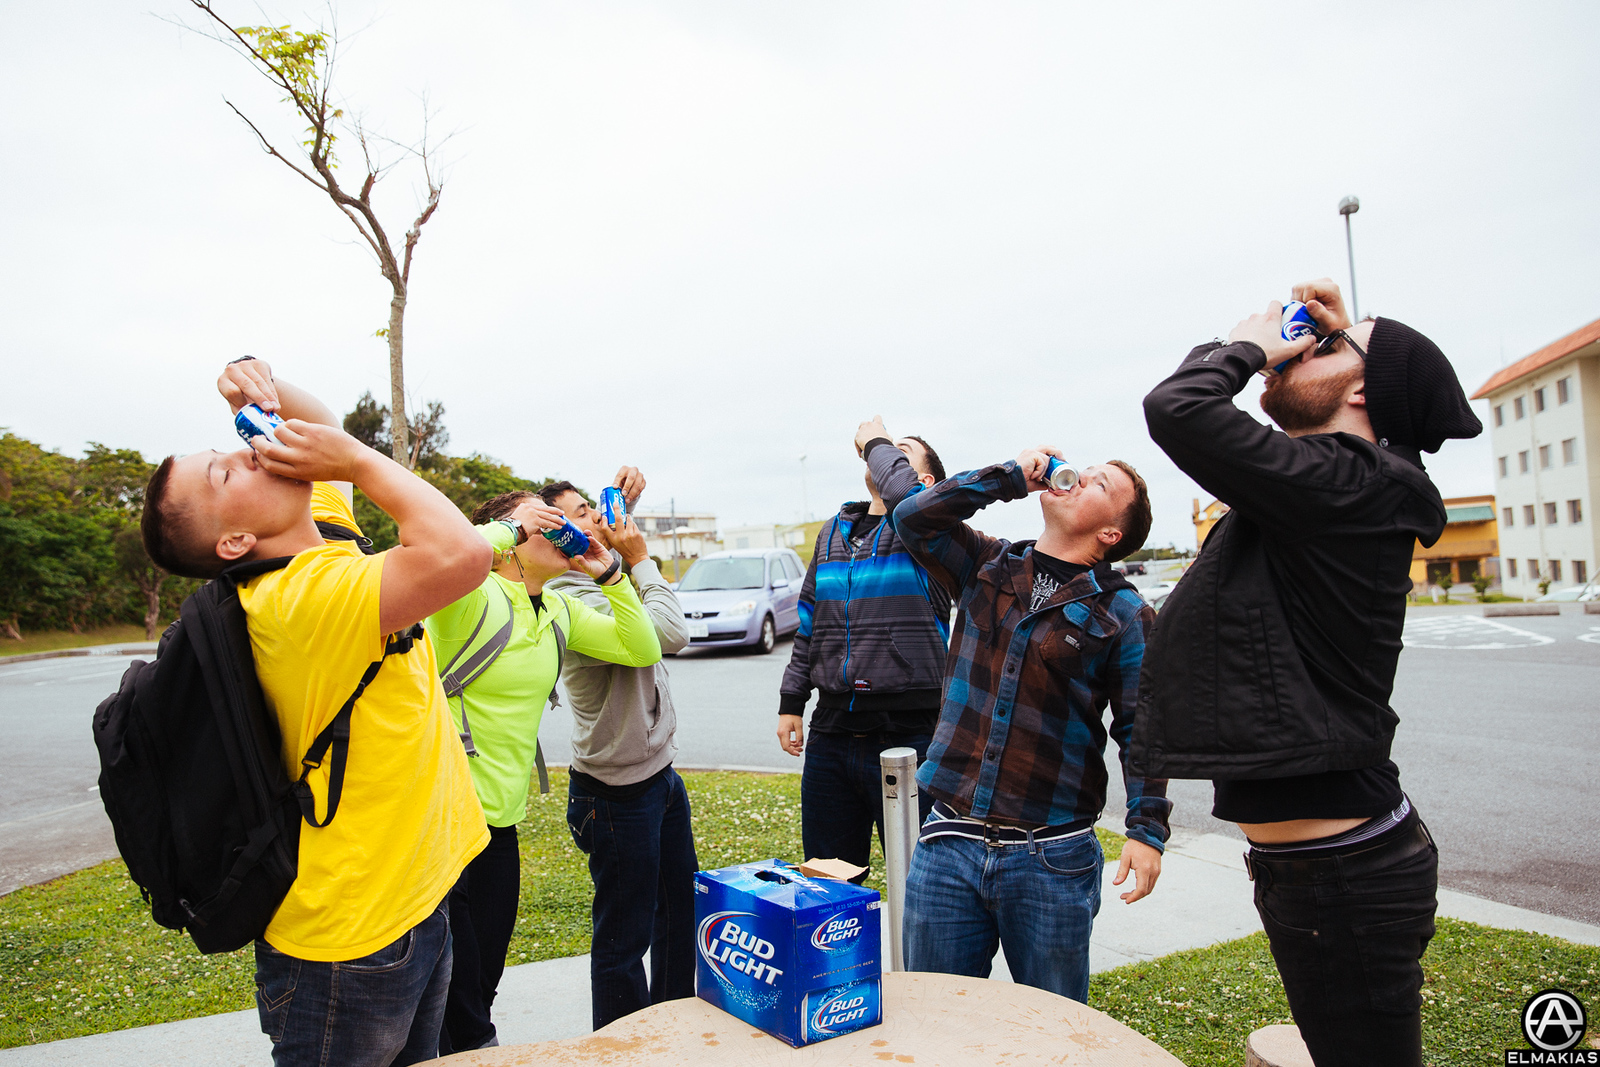 Kevin of A Day To Remember shotgunning a beer with some people on the base